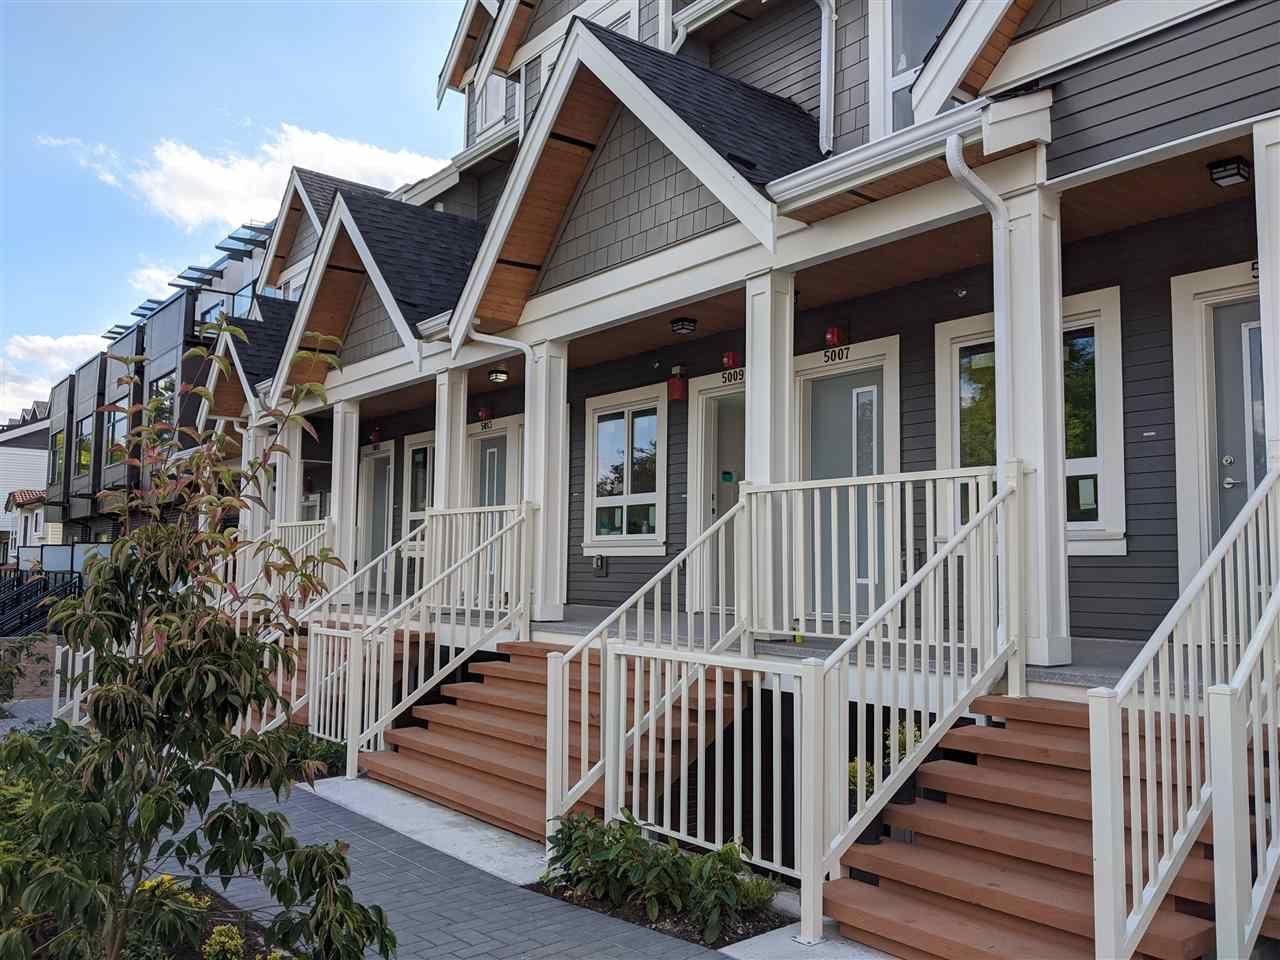 """Main Photo: 5019 CHAMBERS Street in Vancouver: Collingwood VE Townhouse for sale in """"CHAMBERS"""" (Vancouver East)  : MLS®# R2529252"""